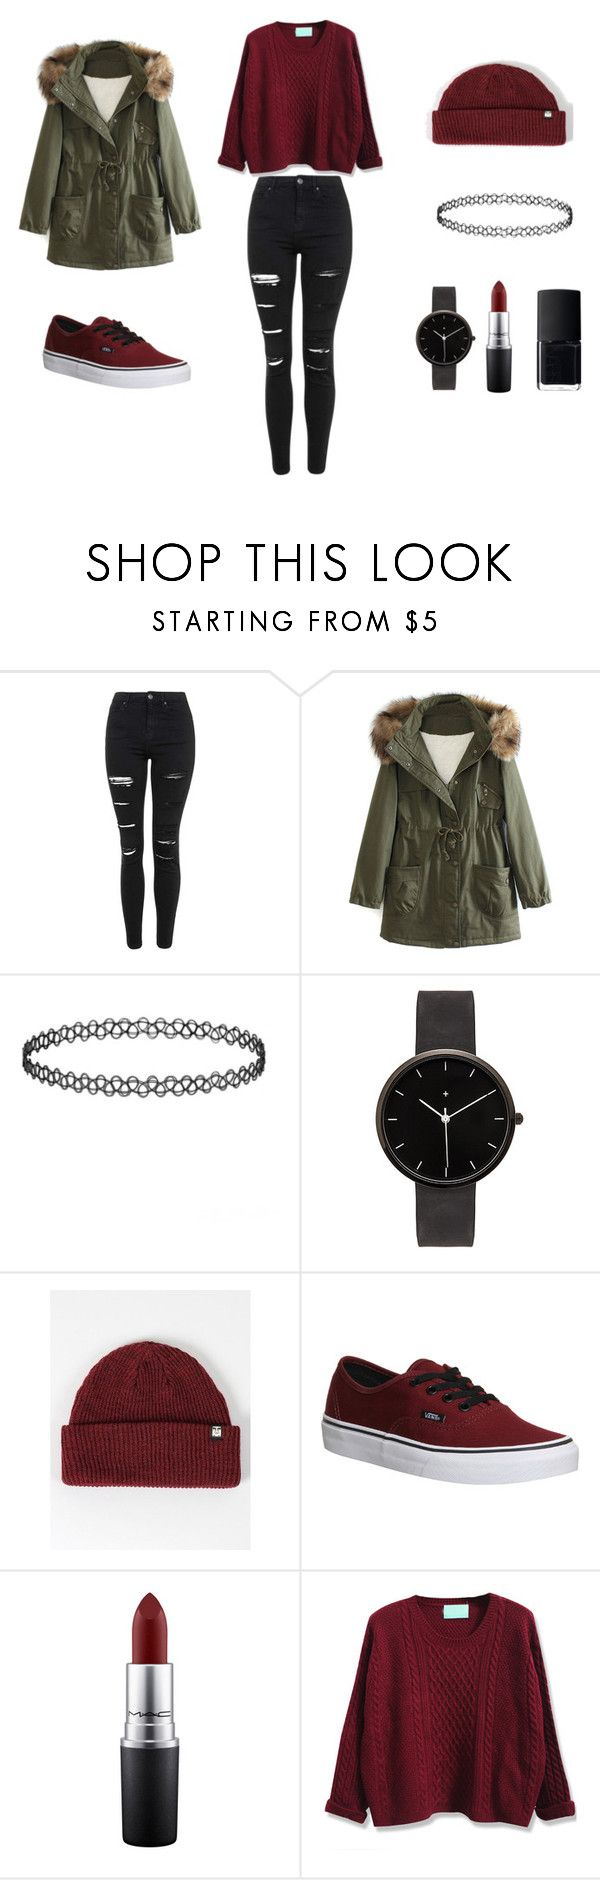 """Granate"" by carolinadiephuis on Polyvore featuring moda, Topshop, WithChic, I Love Ugly, OBEY Clothing, Vans, MAC Cosmetics, NARS Cosmetics, women's clothing y women's fashion"